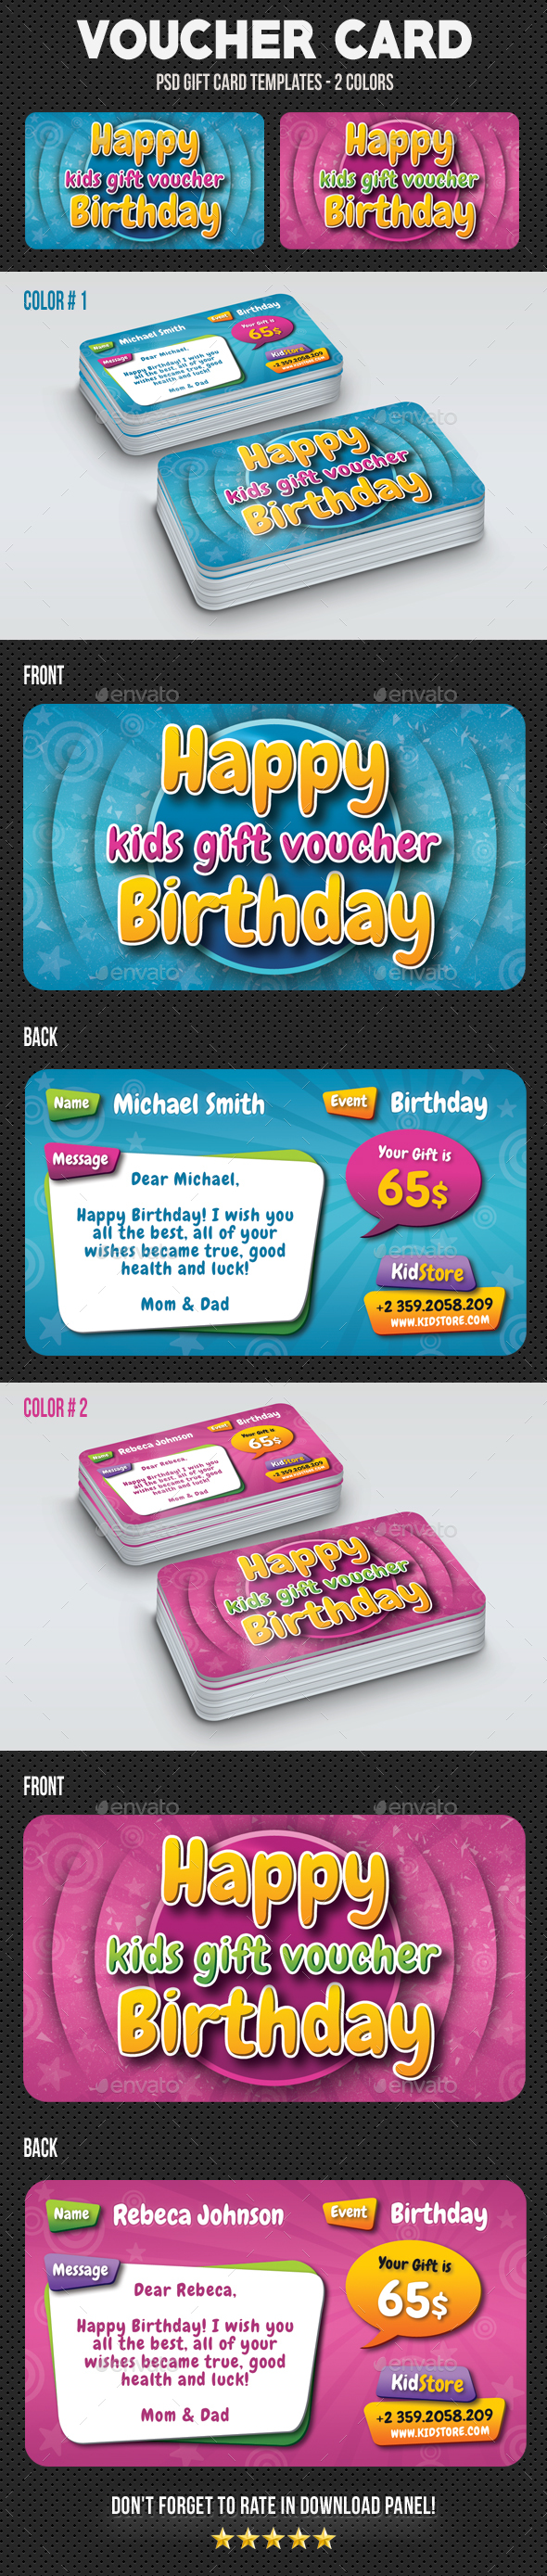 Kids Birthday Voucher Card - Birthday Greeting Cards